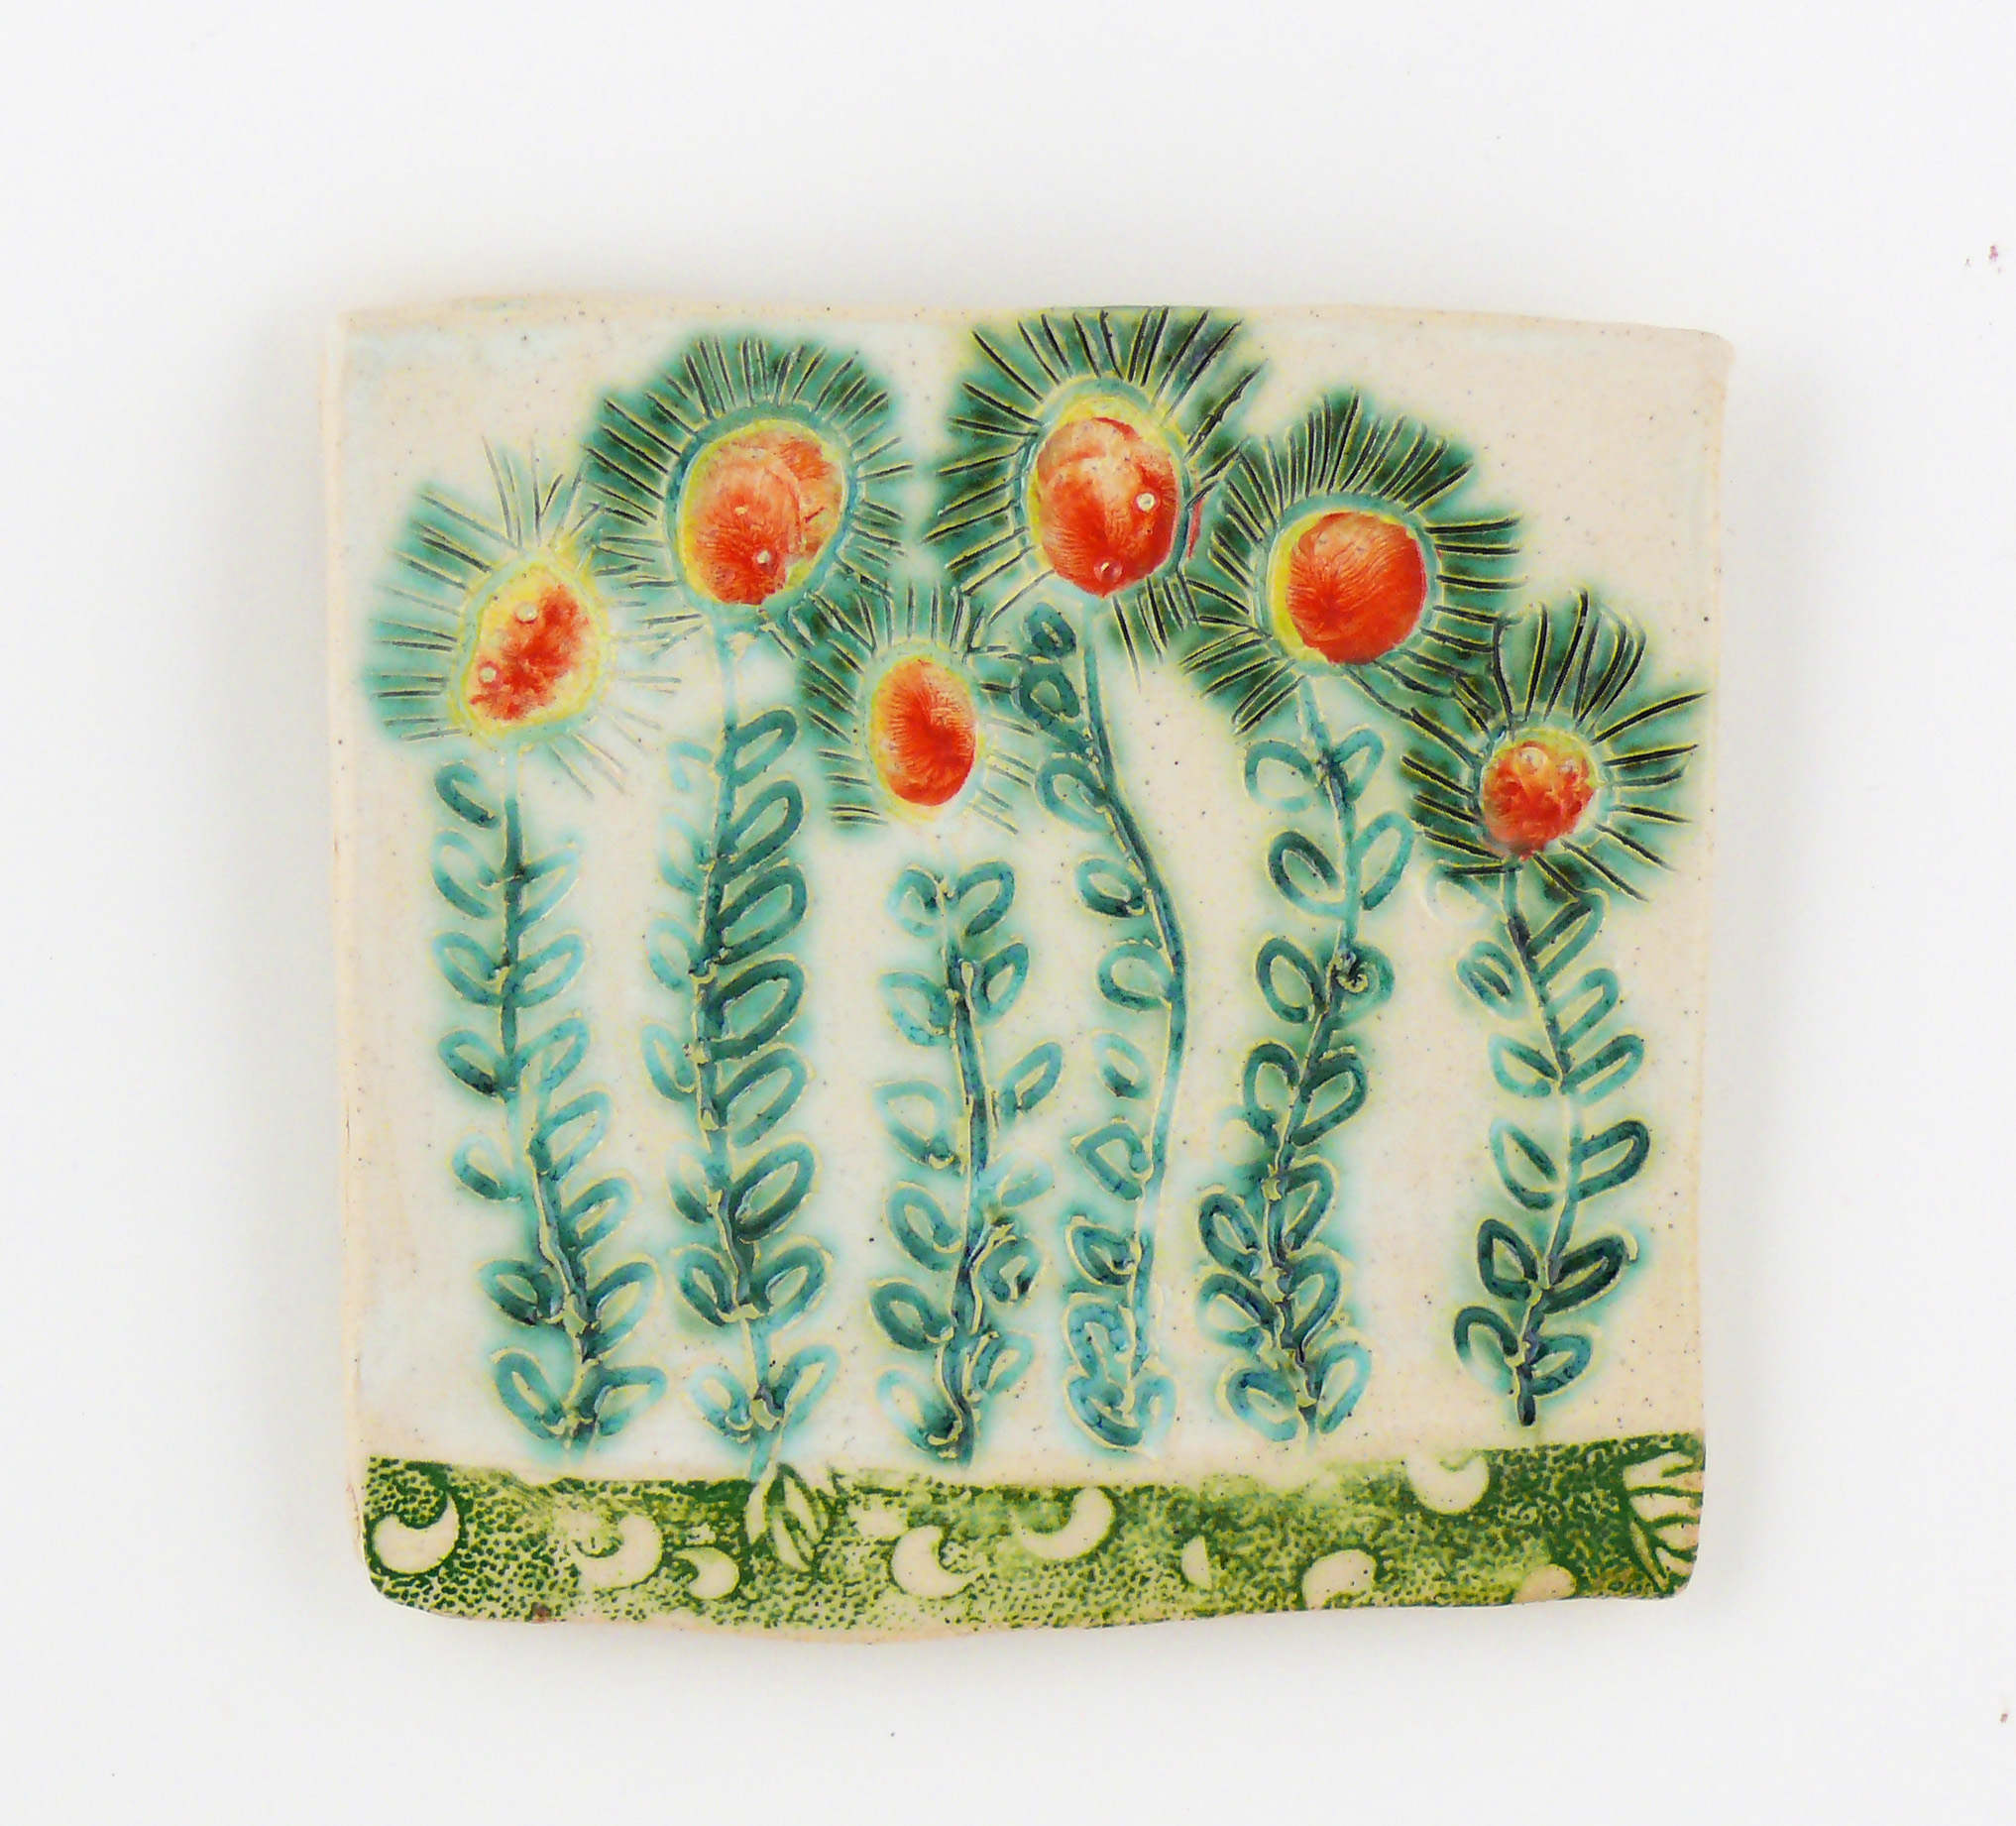 Flowers, porcelain wall tile. Cathy Kiffney. 5x5""